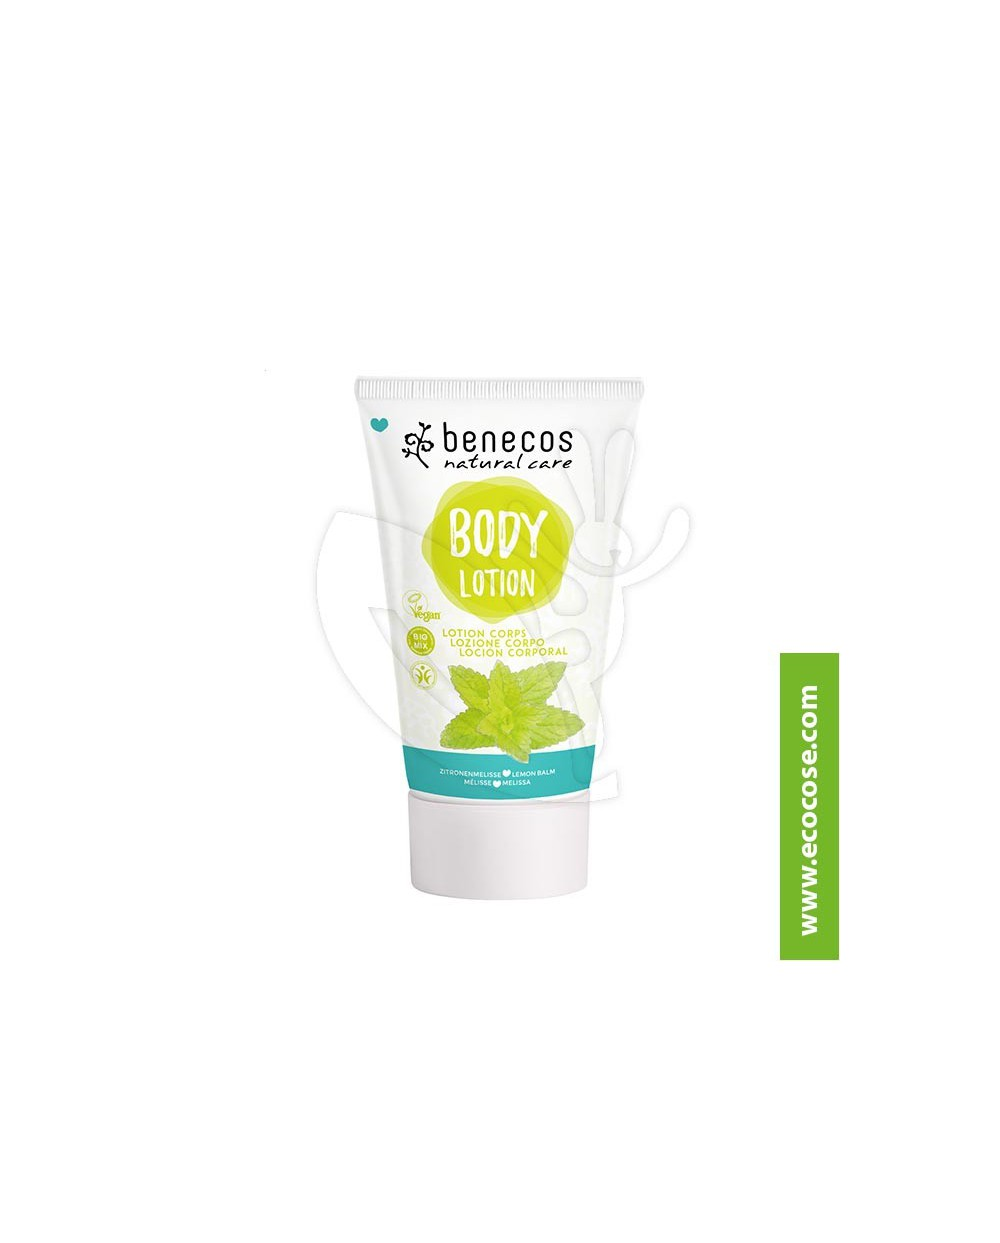 Benecos - Natural Care - Body Lotion - Melissa